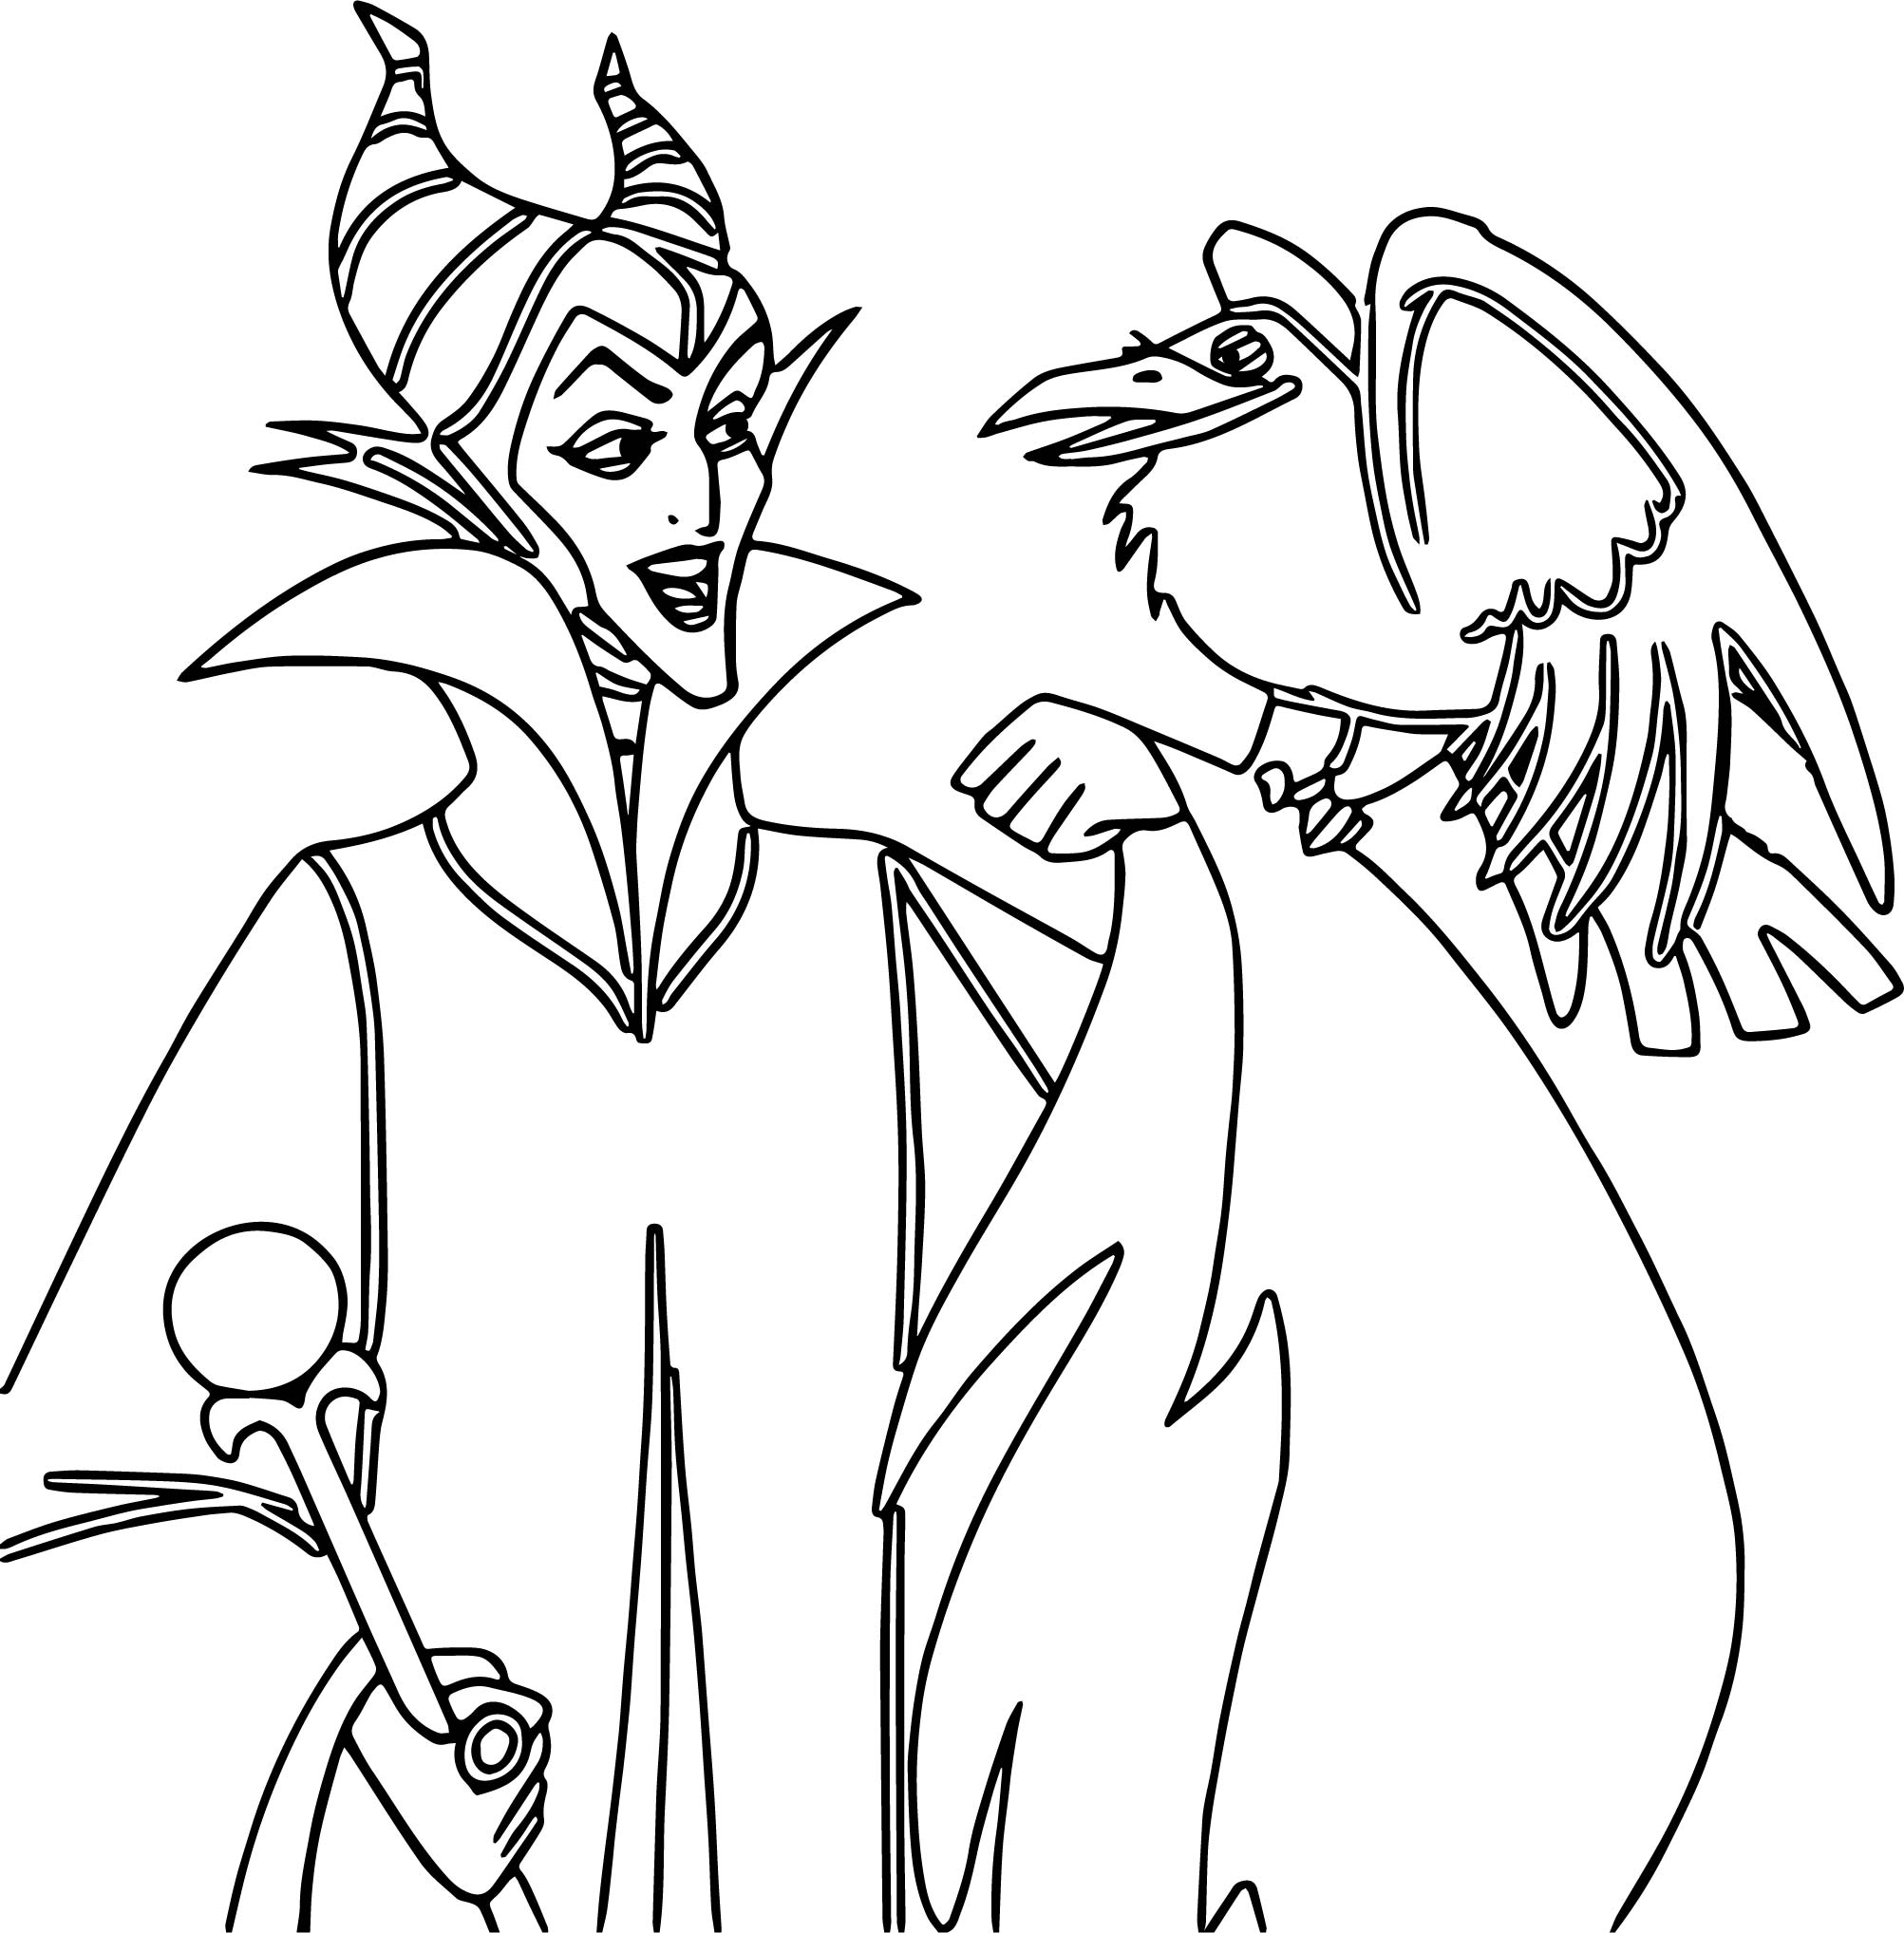 Maleficent And Crow Coloring Page Wecoloringpage